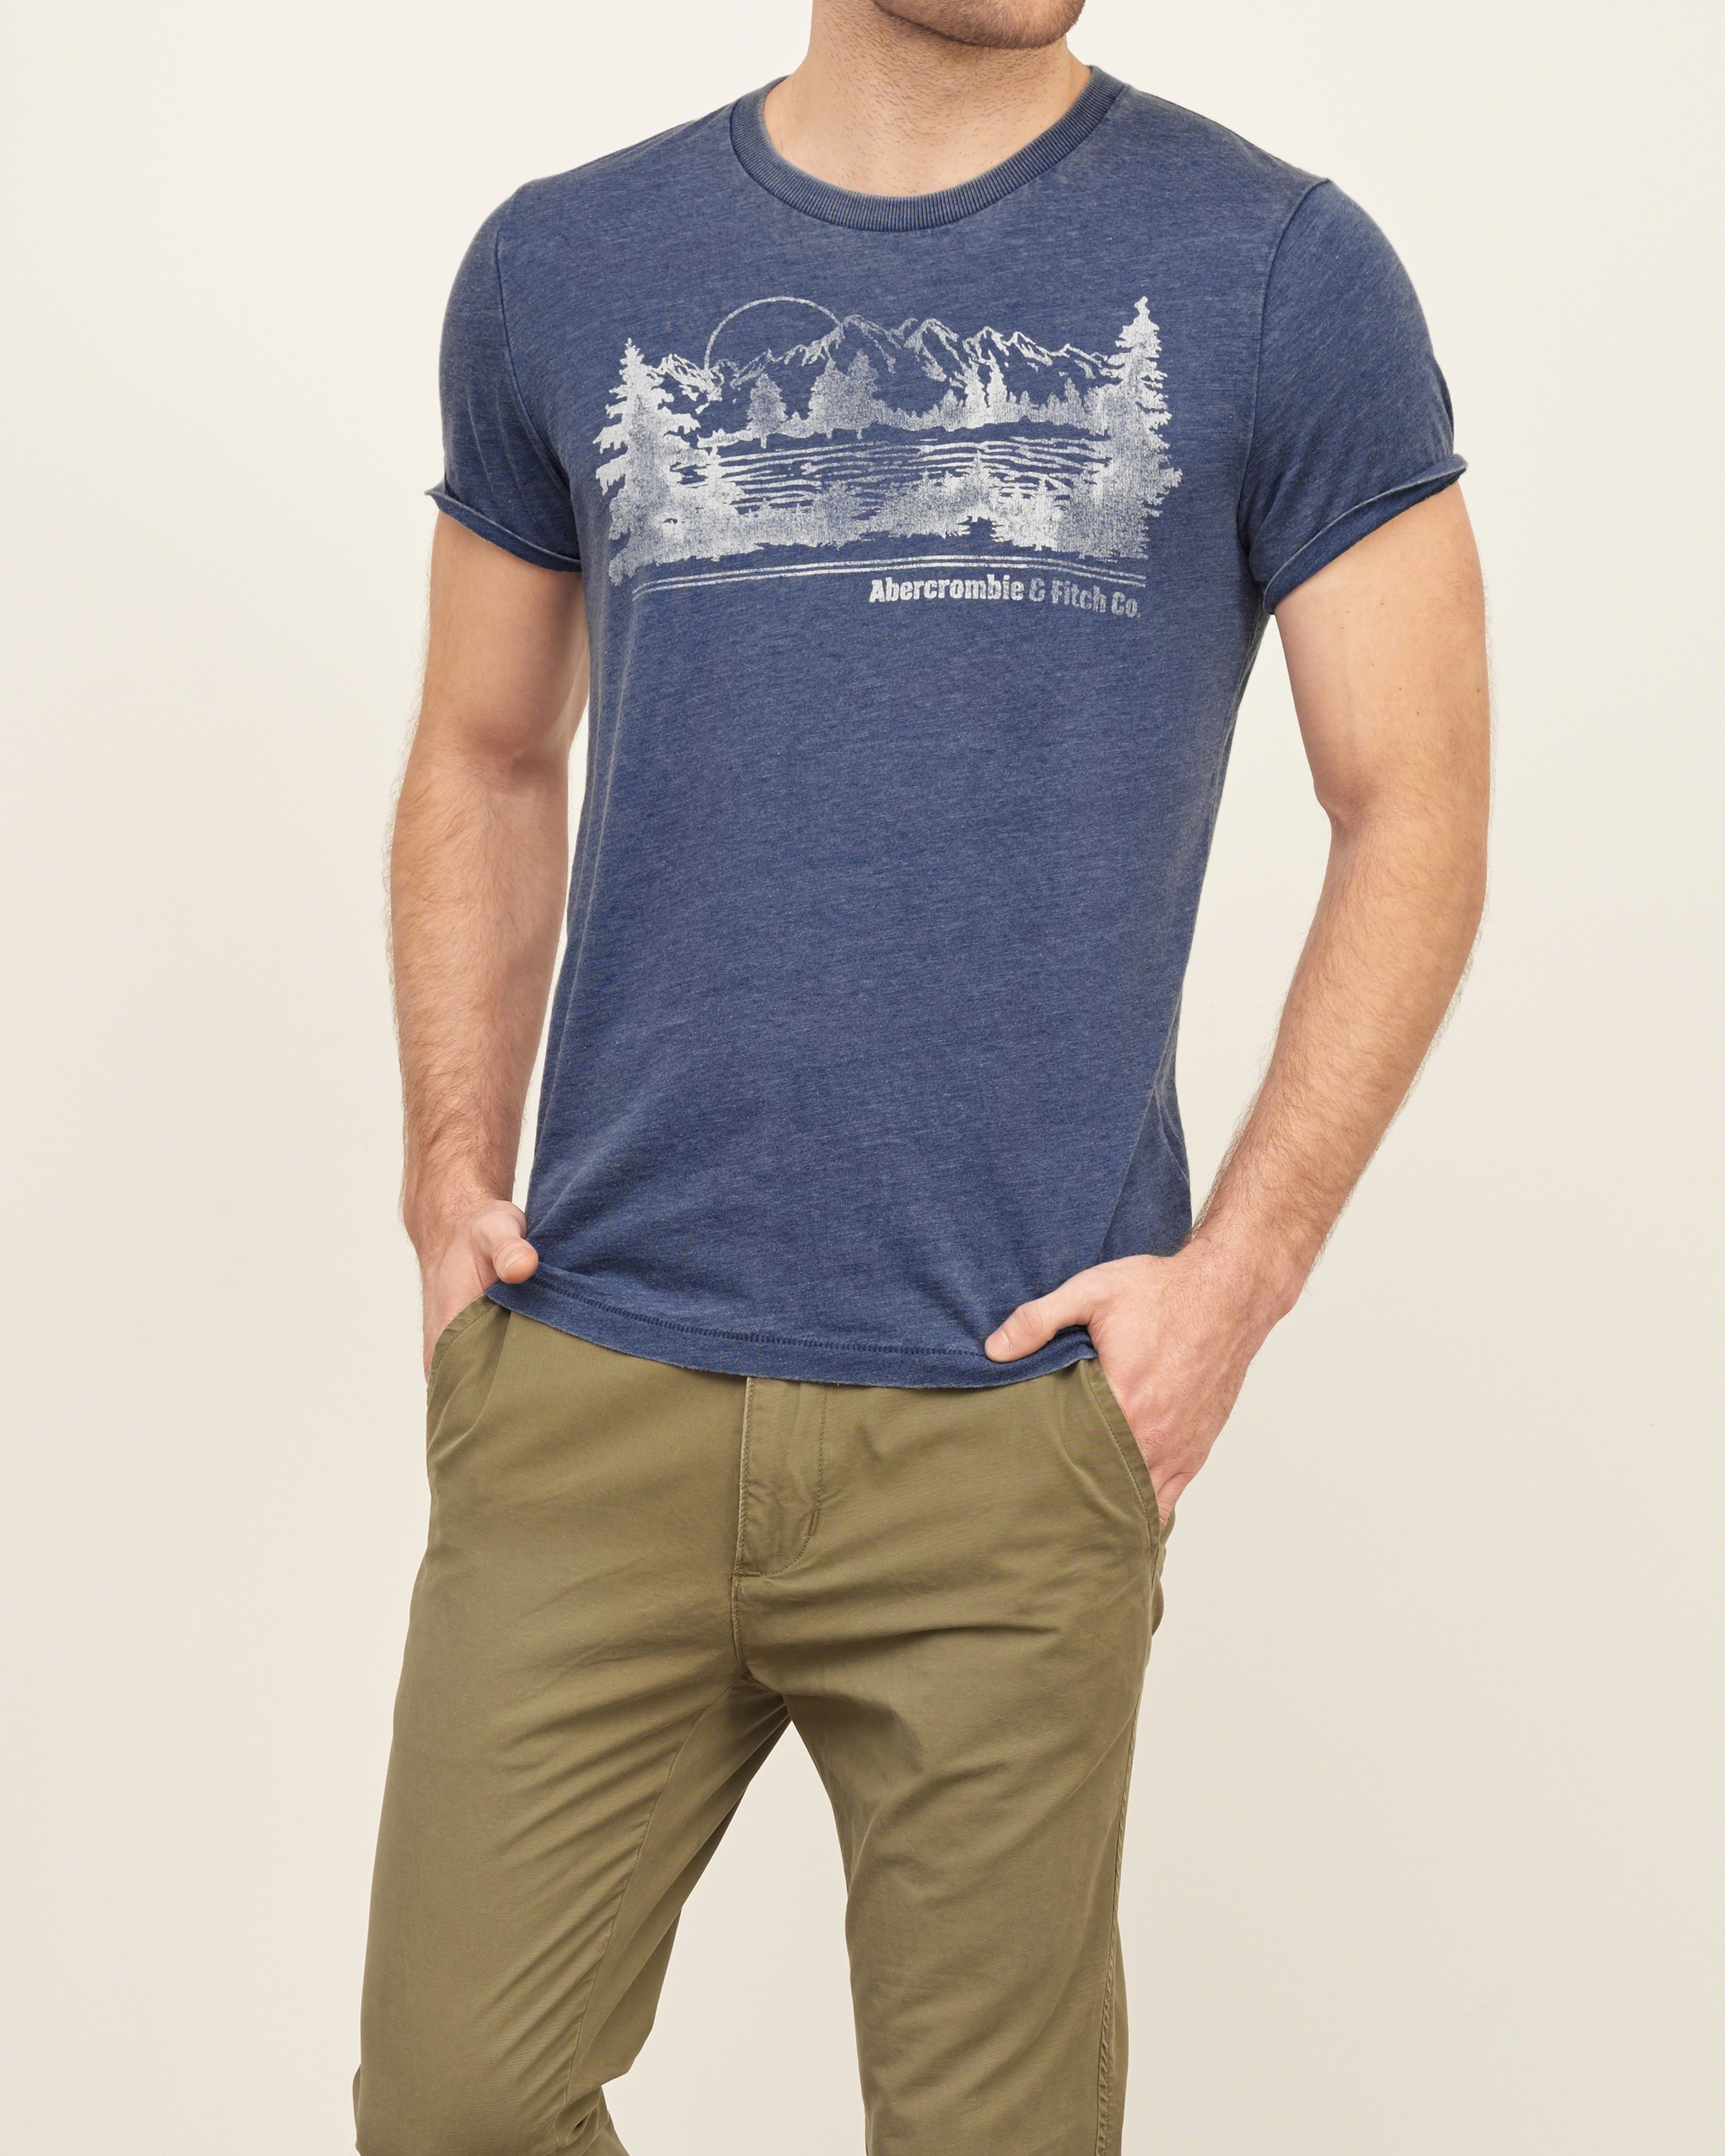 Lyst abercrombie fitch vintage logo graphic tee in for Abercrombie logo t shirt